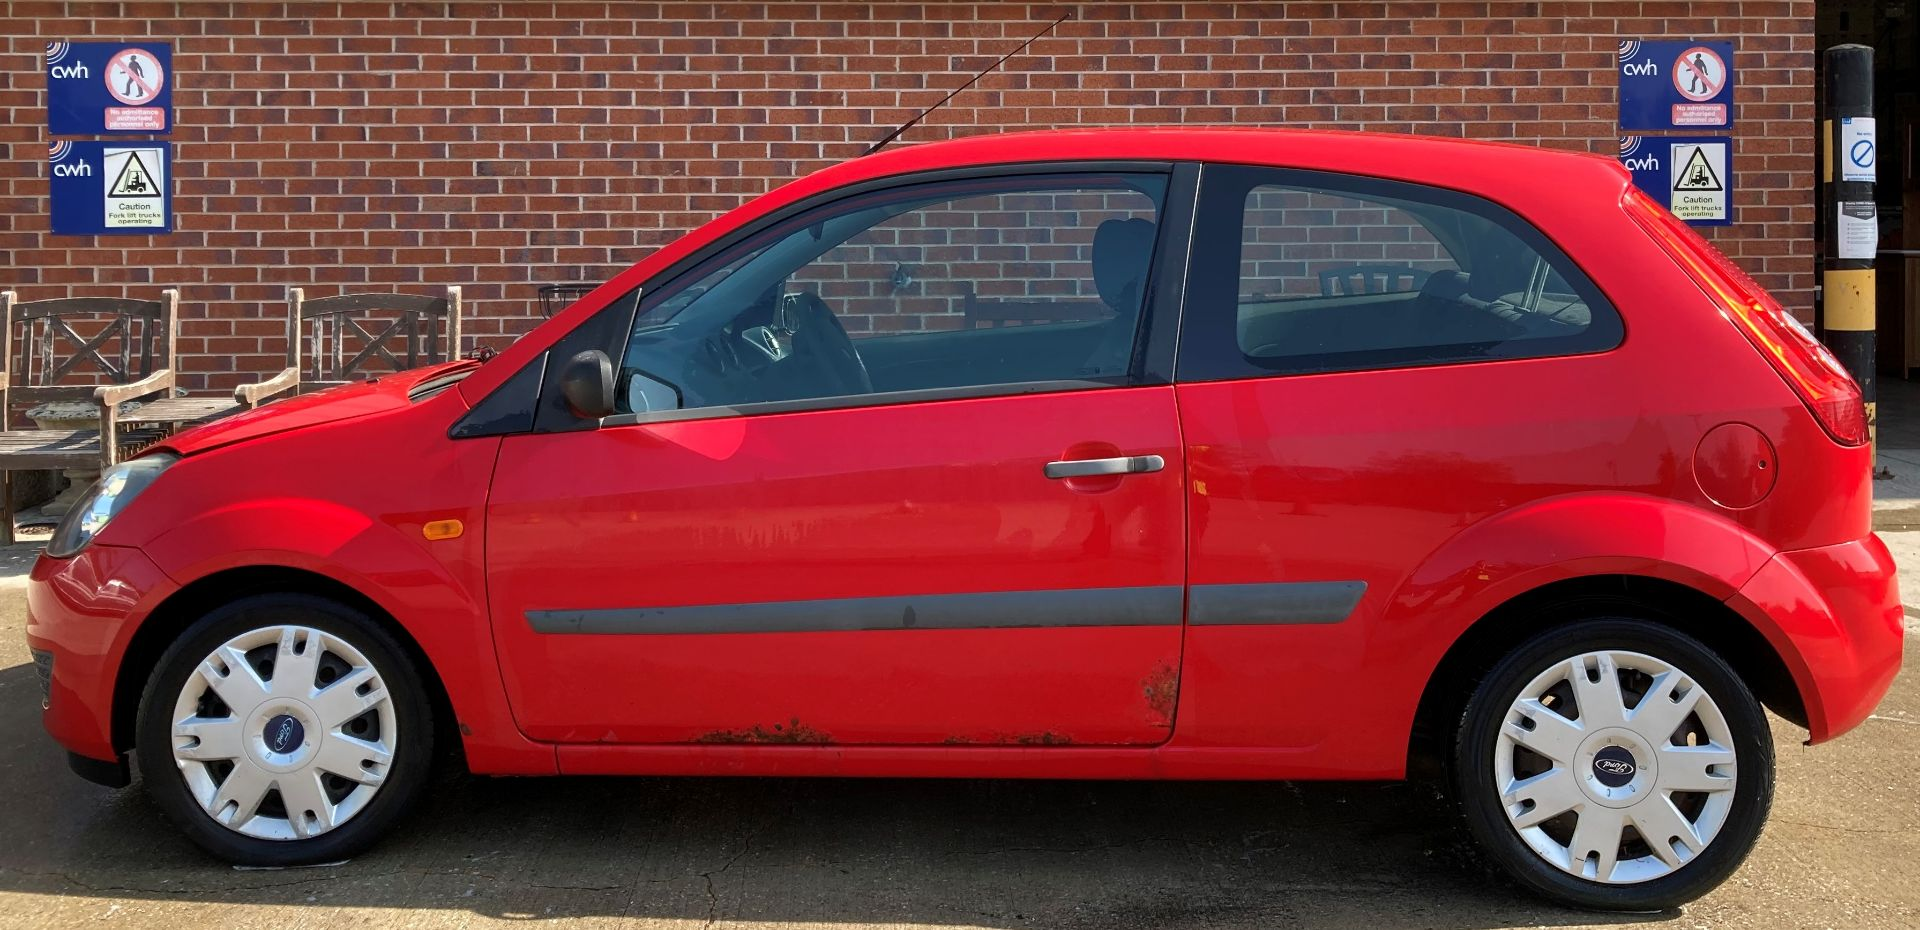 FROM A DECEASED ESTATE FORD FIESTA STYLE 1.2 3 door hatchback - petrol - red Reg No: YB08 XOX Rec. - Image 7 of 10